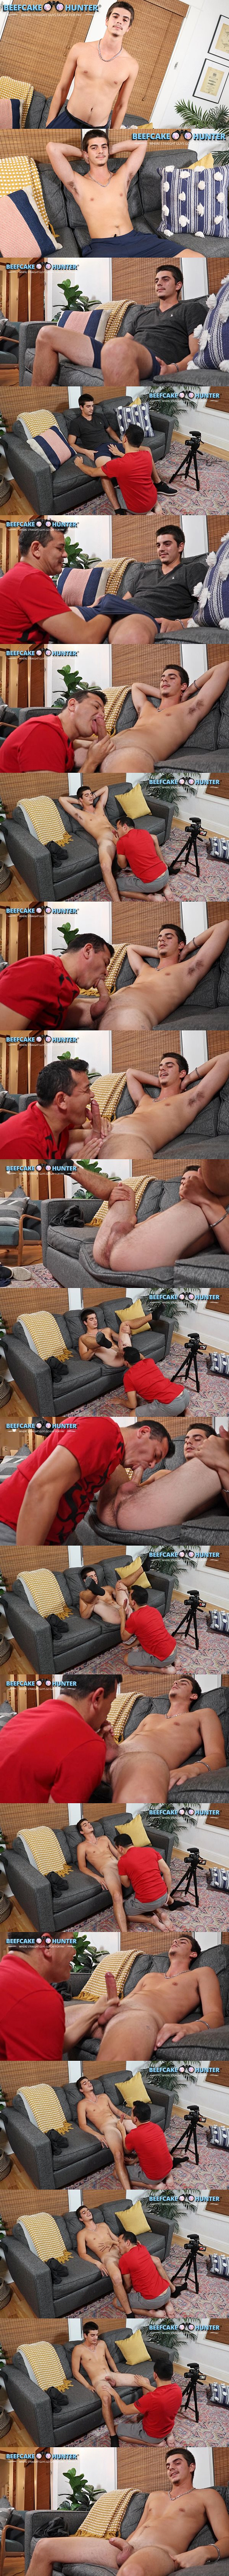 Beefcakehunter - Victor deep-throats straight delivery guy Ernest's cock and rim Ernest's tight virgin ass before he jerks a big load out of Ernest's hard pole 02